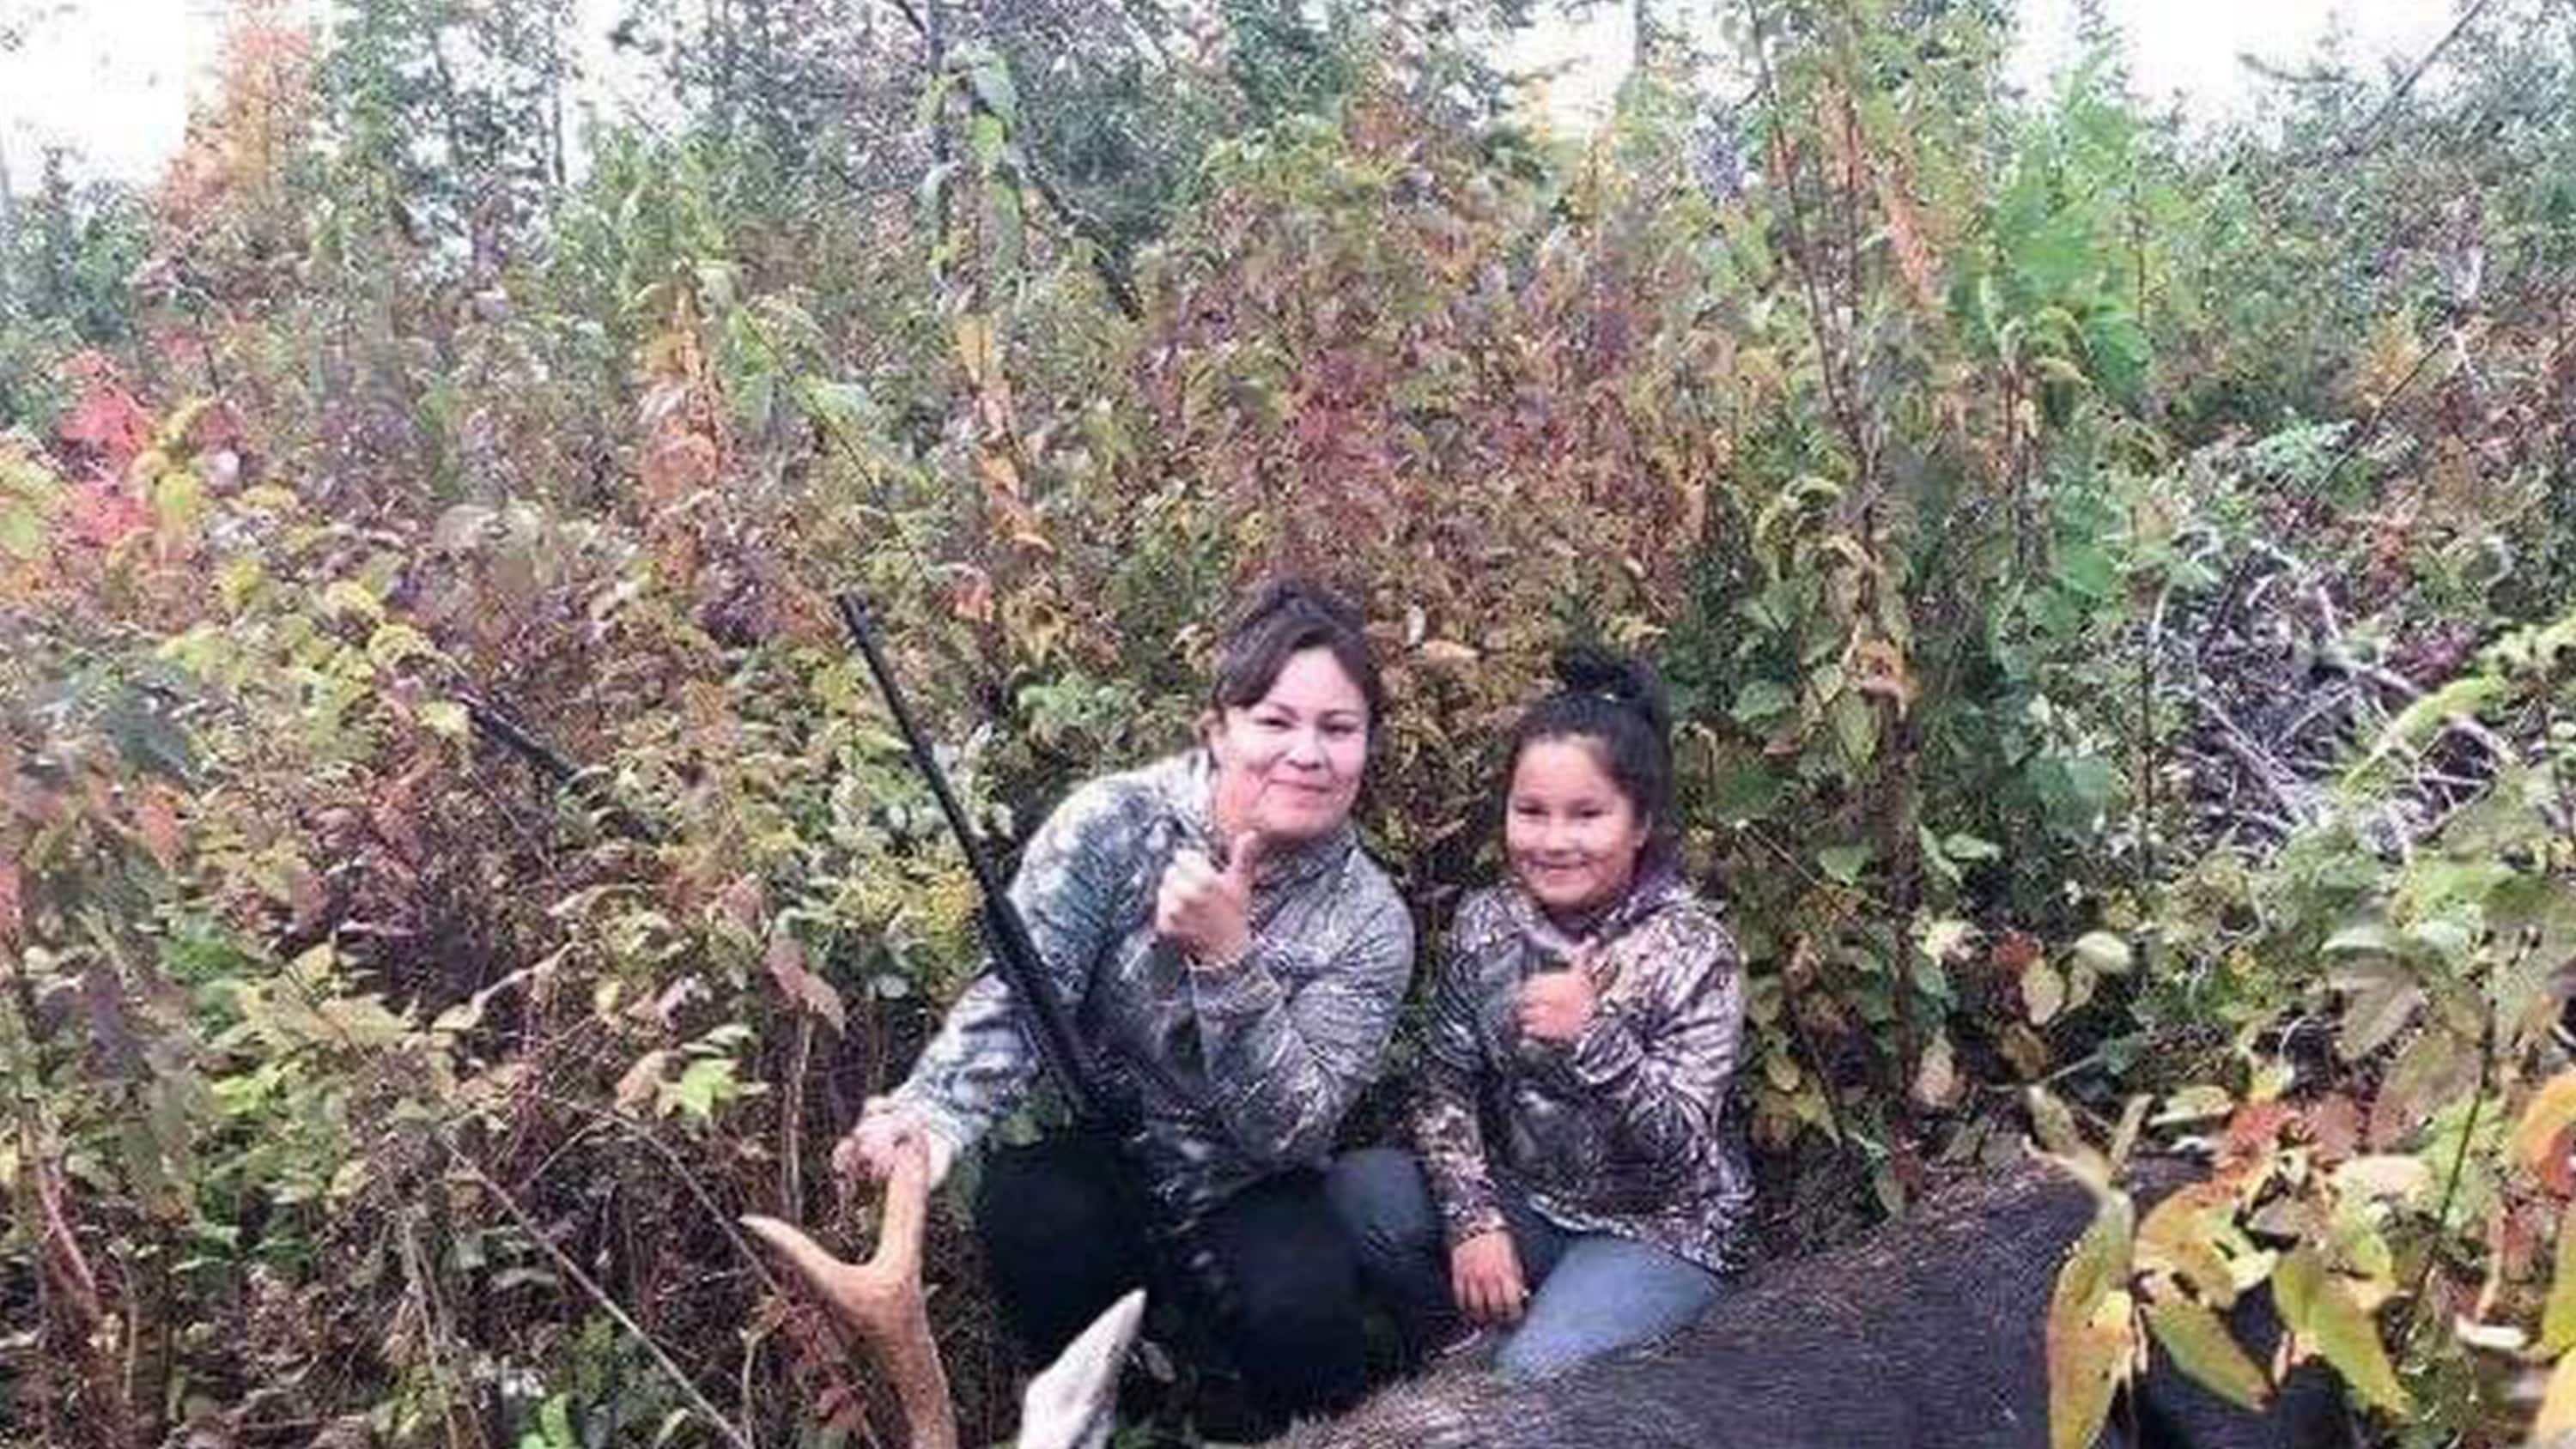 Trinity Bosum with her mother, Jennifer Thivierge, on a hunting trip.